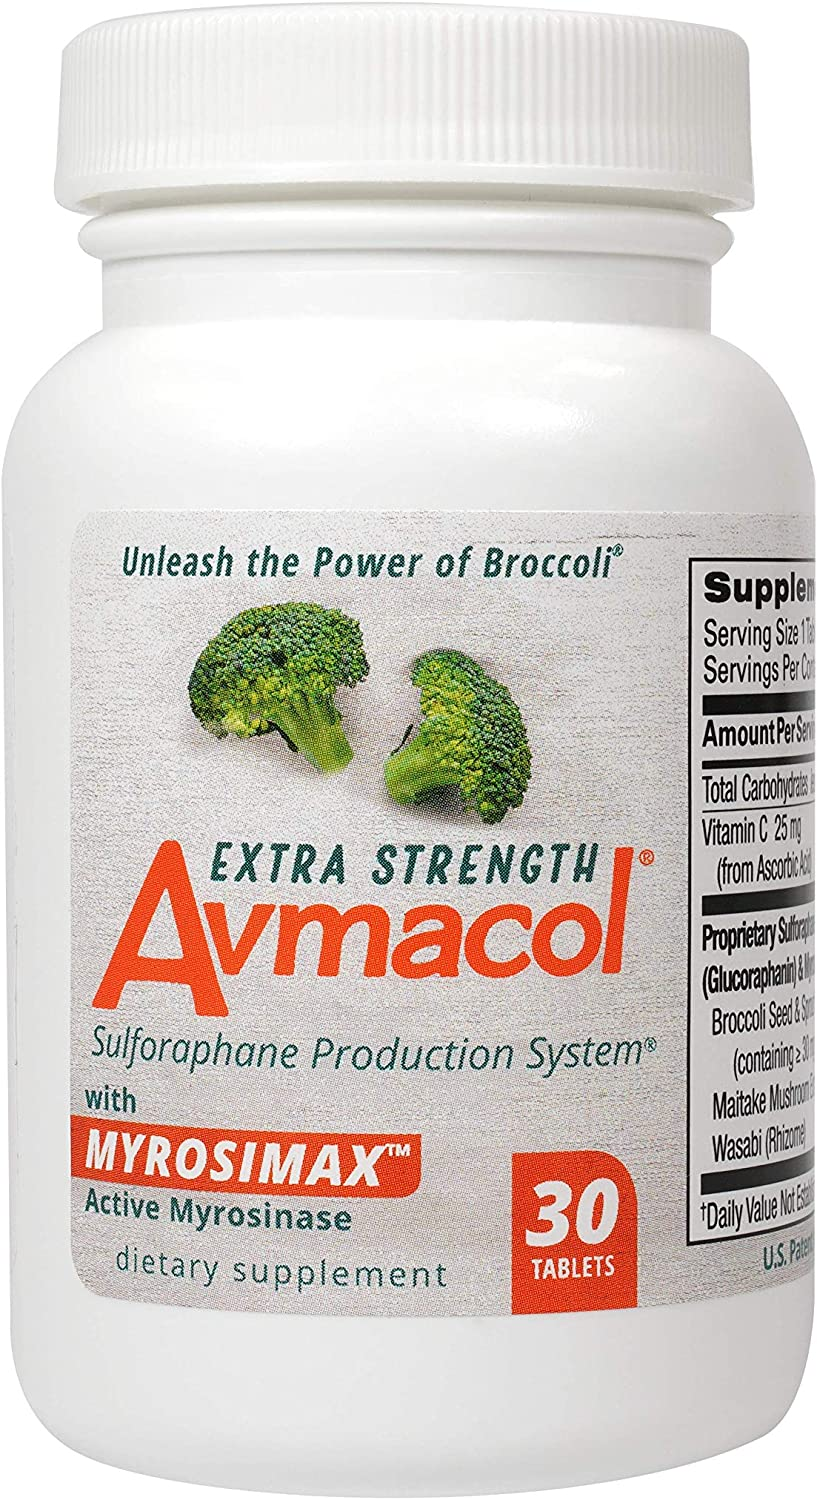 Avmacol Extra Strength Sulforaphane Production System for Immune Support, 30 Tablets